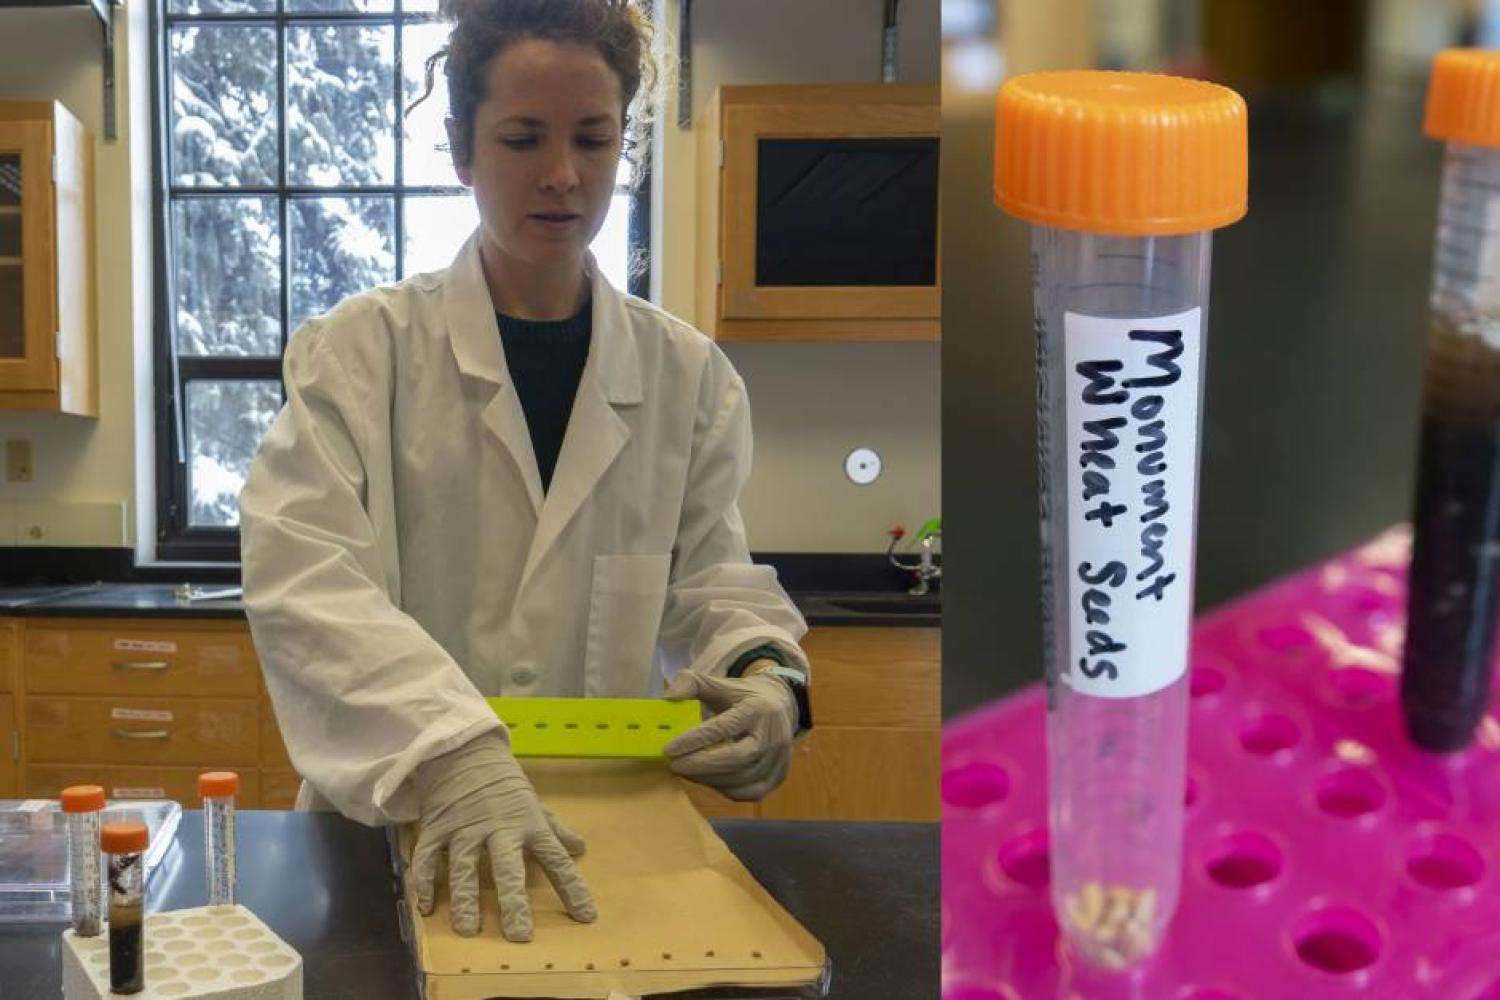 """CORINNE WALSH SETS UP AN EXPERIMENT TO  EXPLORE THE RELATIONSHIP BETWEEN MICROBES AND WHEAT PRODUCTION (L PANEL). THE THREE VIALS CONTAIN A DRY DIRT SAMPLE, A DIRT SAMPLE MIXED WITH WATER, AND THE WHEAT SEEDS THAT WALSH THEN APPLIES THE WET DIRT """"SLURRY"""" TO (R PANEL)."""